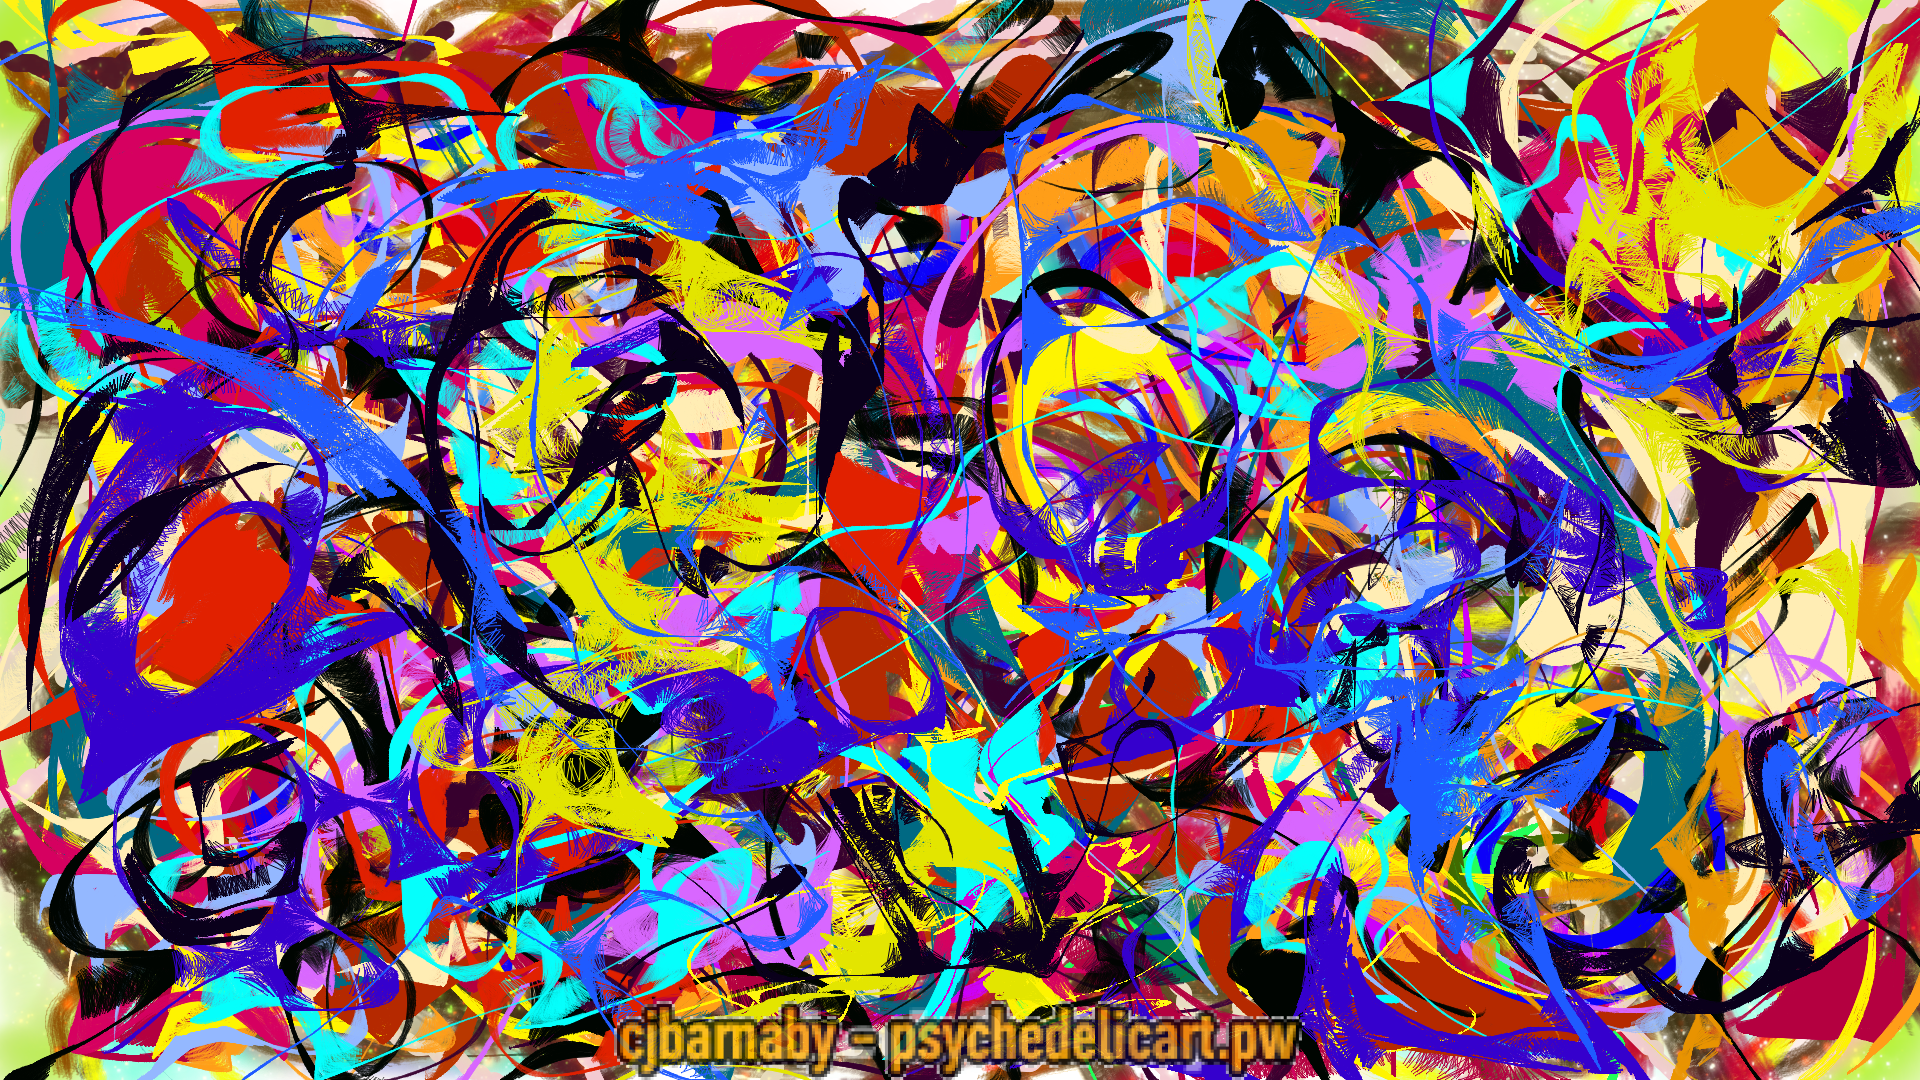 psychedelic art http://psychedelicart.pw/wp-content/uploads/SituationalAwareness.png